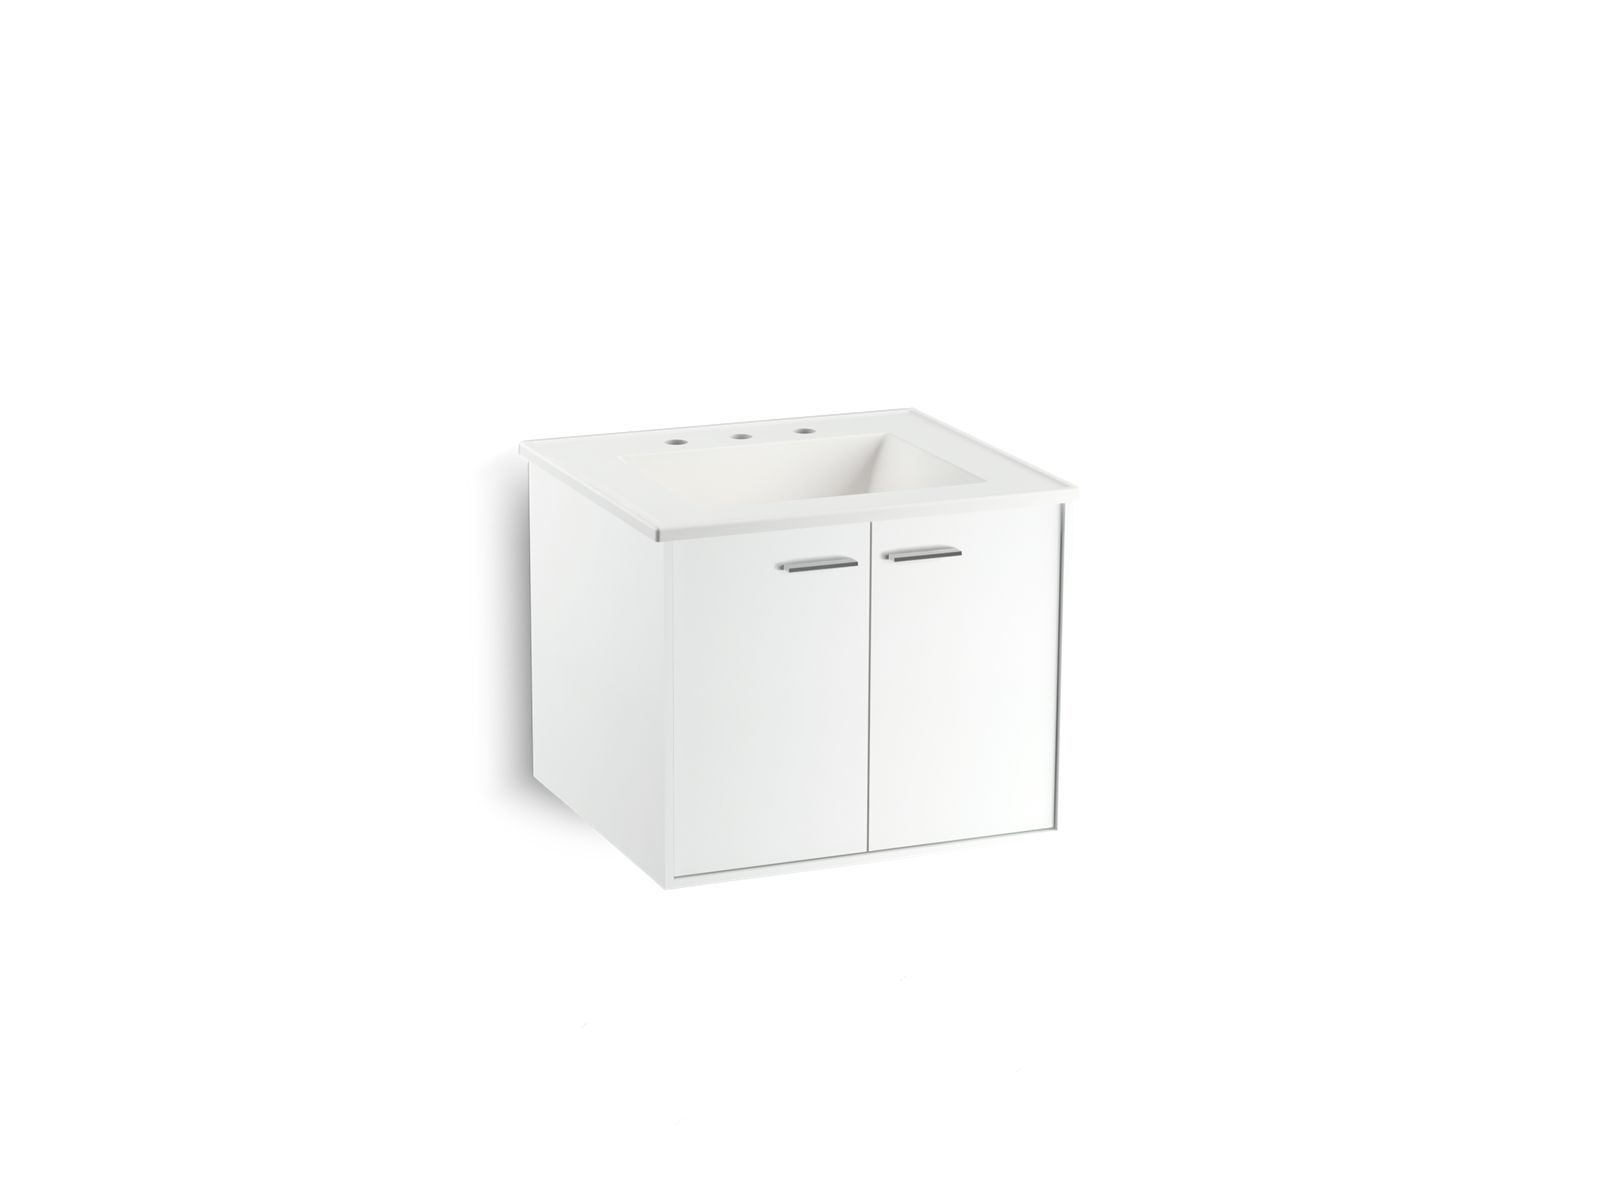 Part of the KOHLER Tailored vanity collection the Jute bathroom vanity bines the warmth of wood with a modern wall hung design